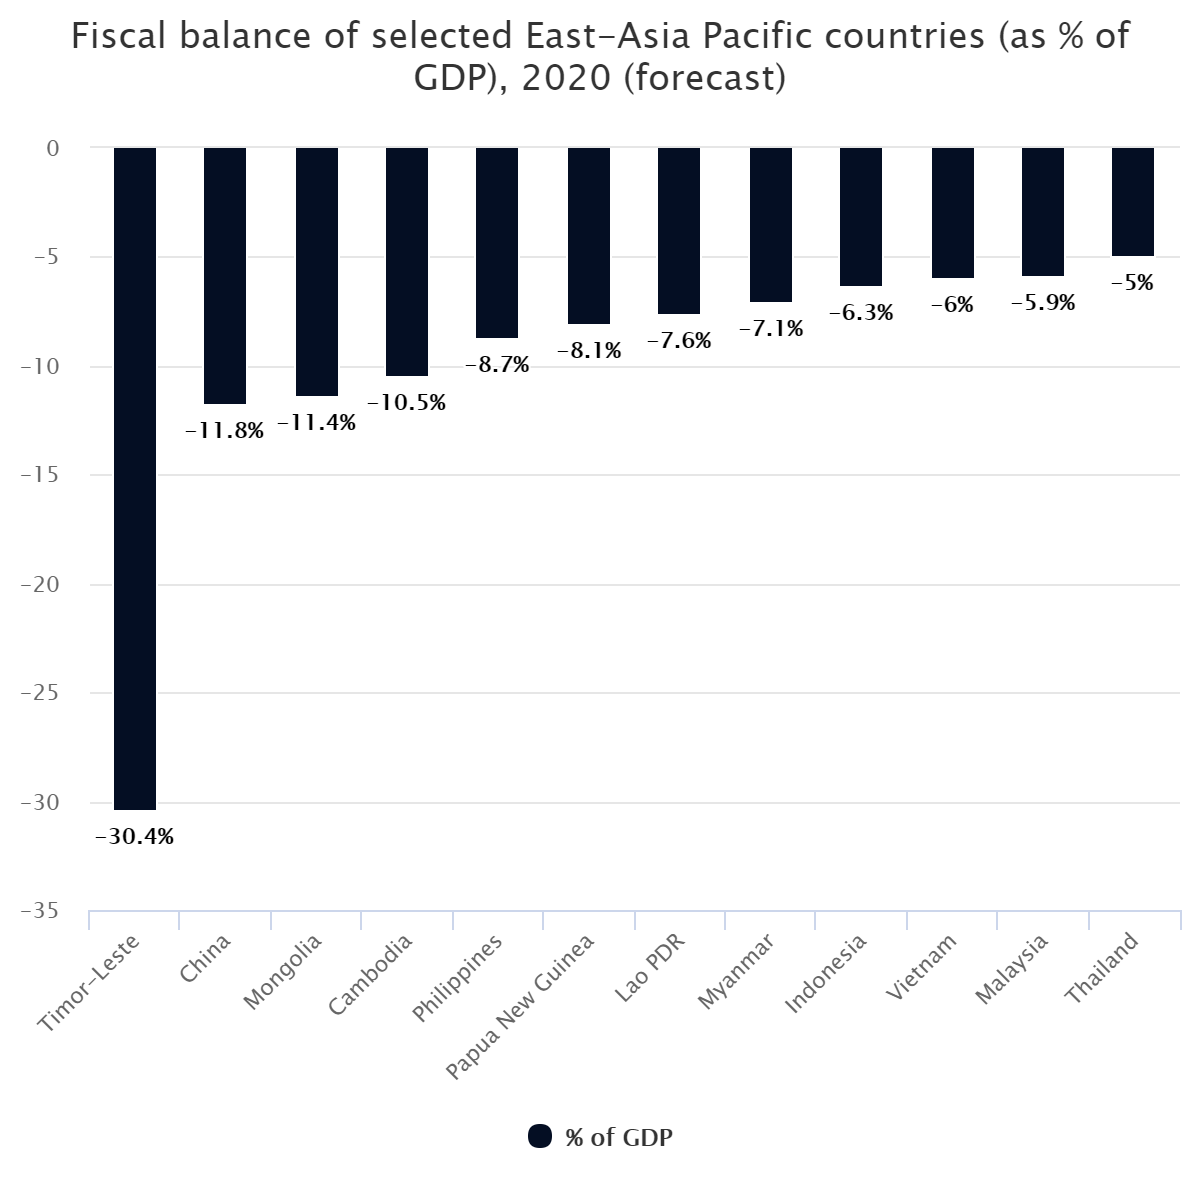 Fiscal balance of selected East-Asia Pacific countries (as % of GDP), 2020 (forecast)